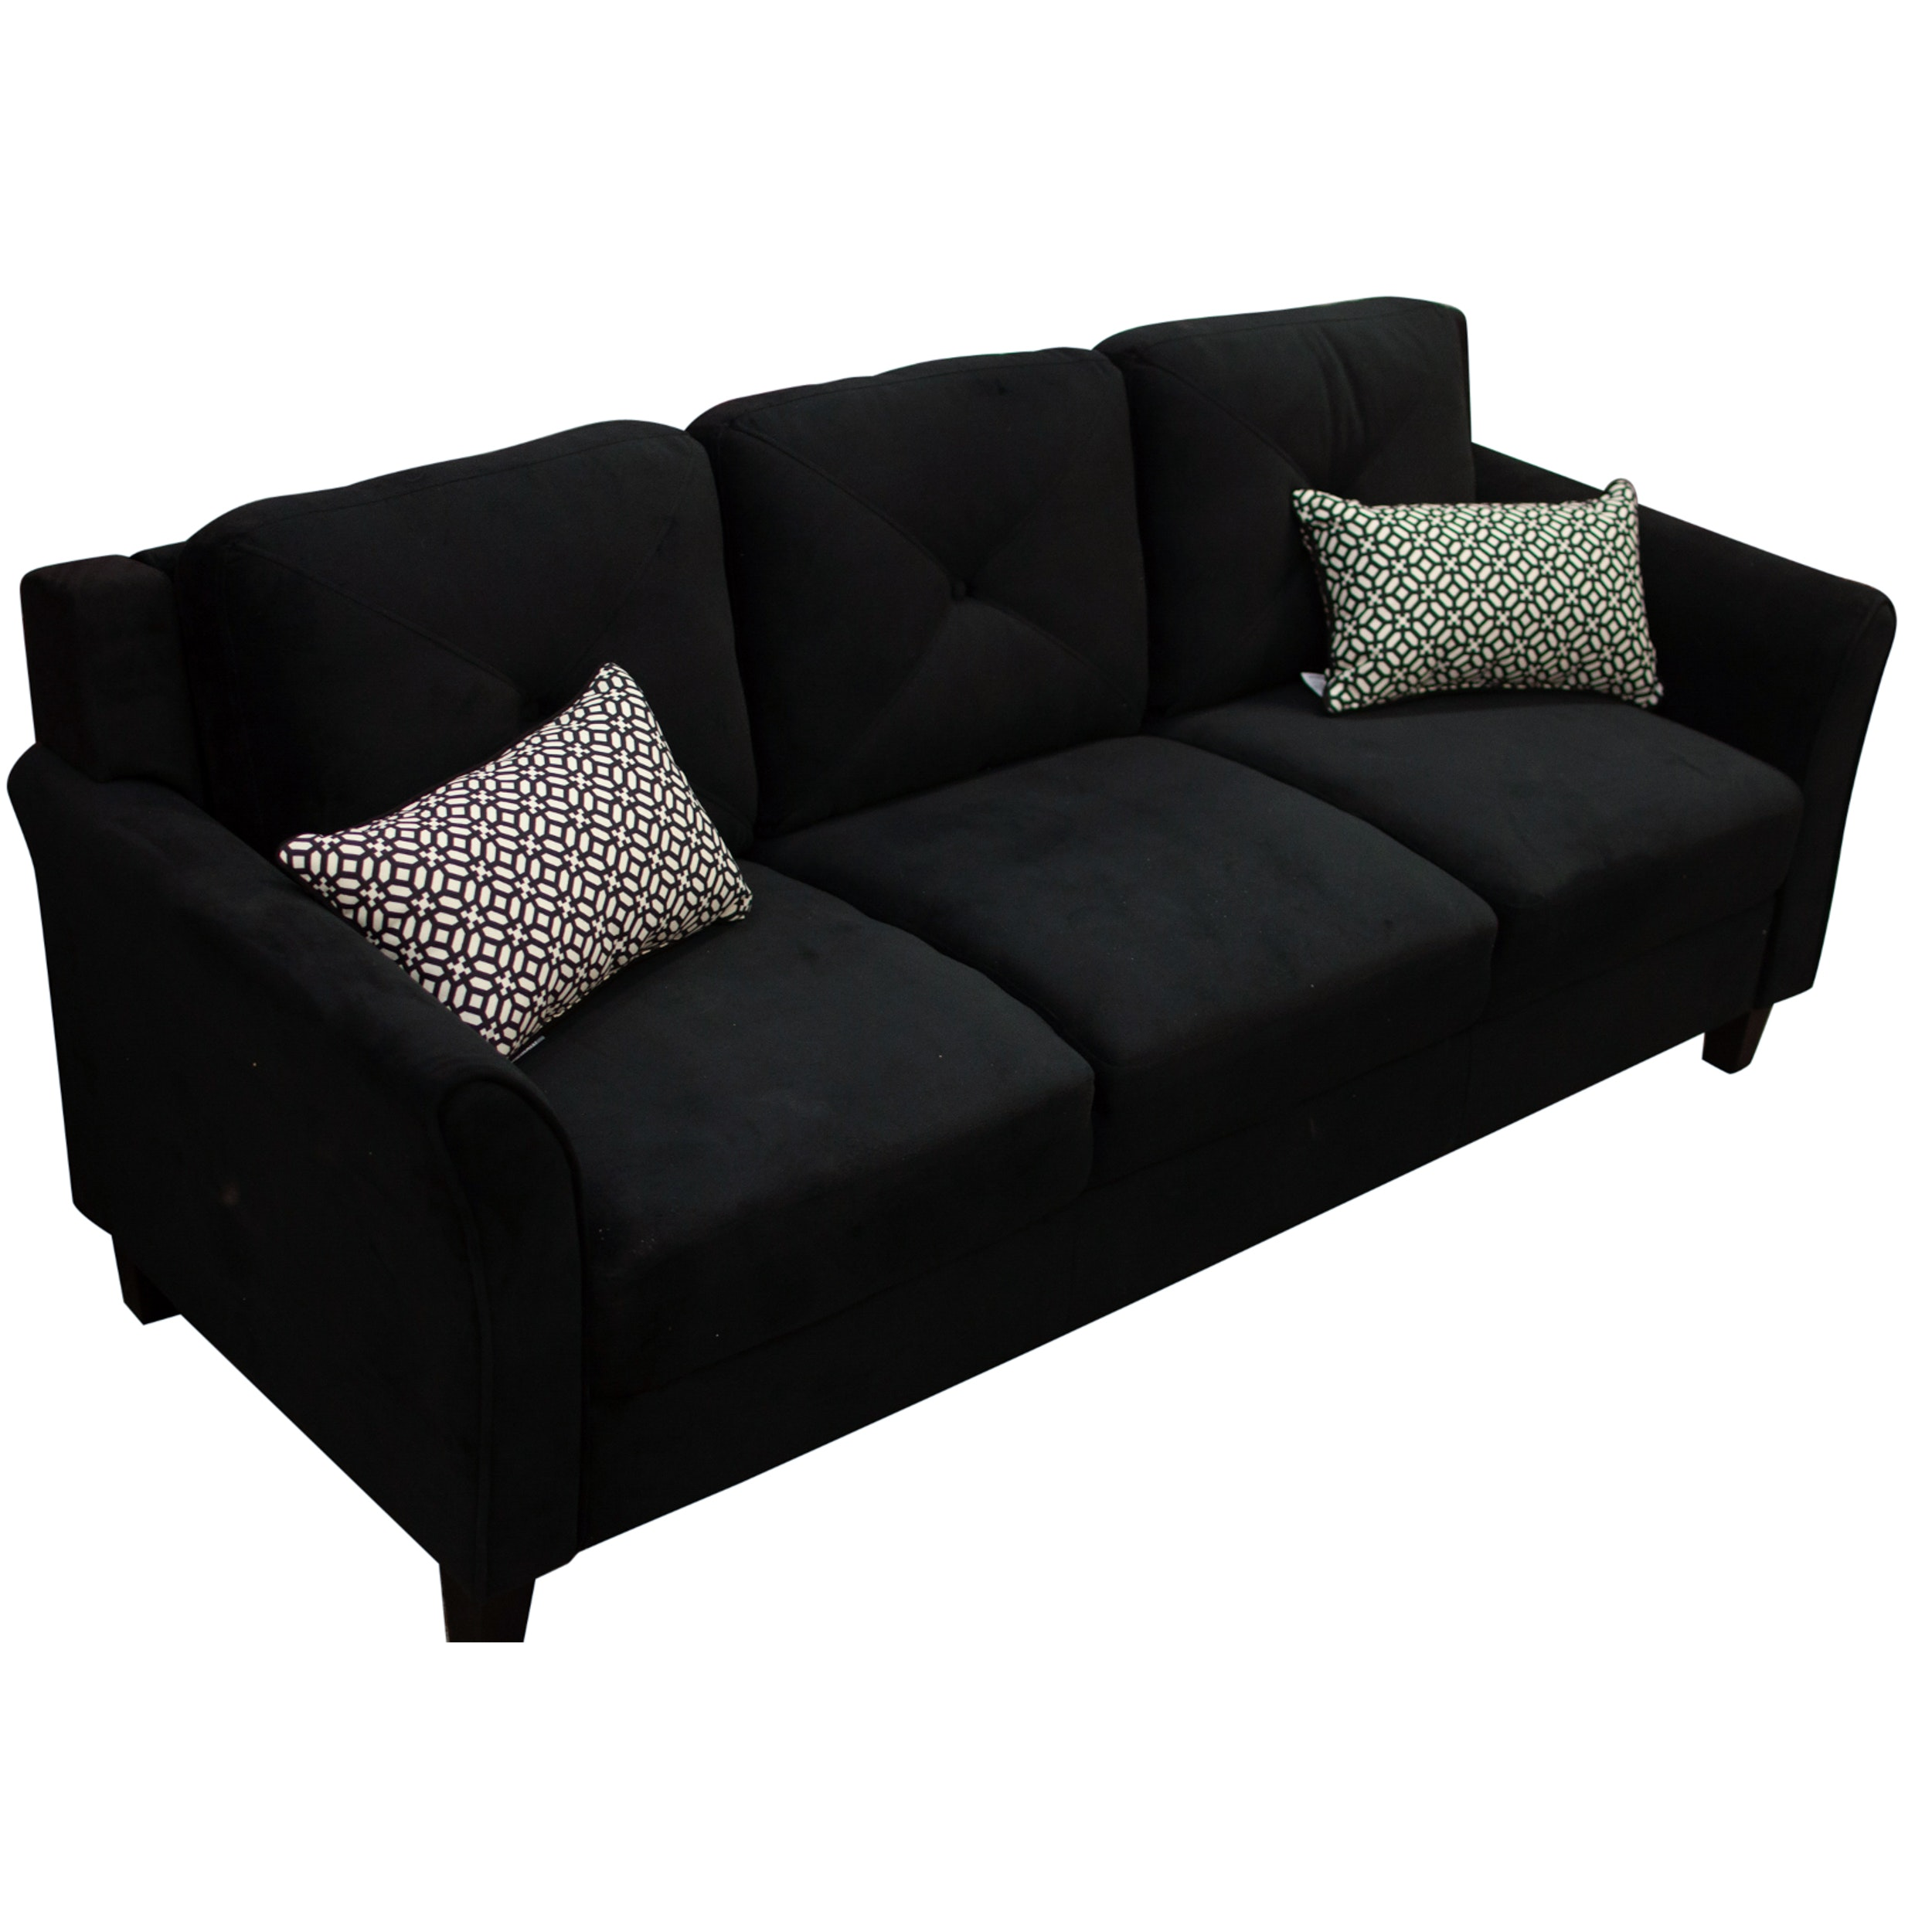 Lifestyle Solutions Black Upholstered Tufted Sofa, Contemporary